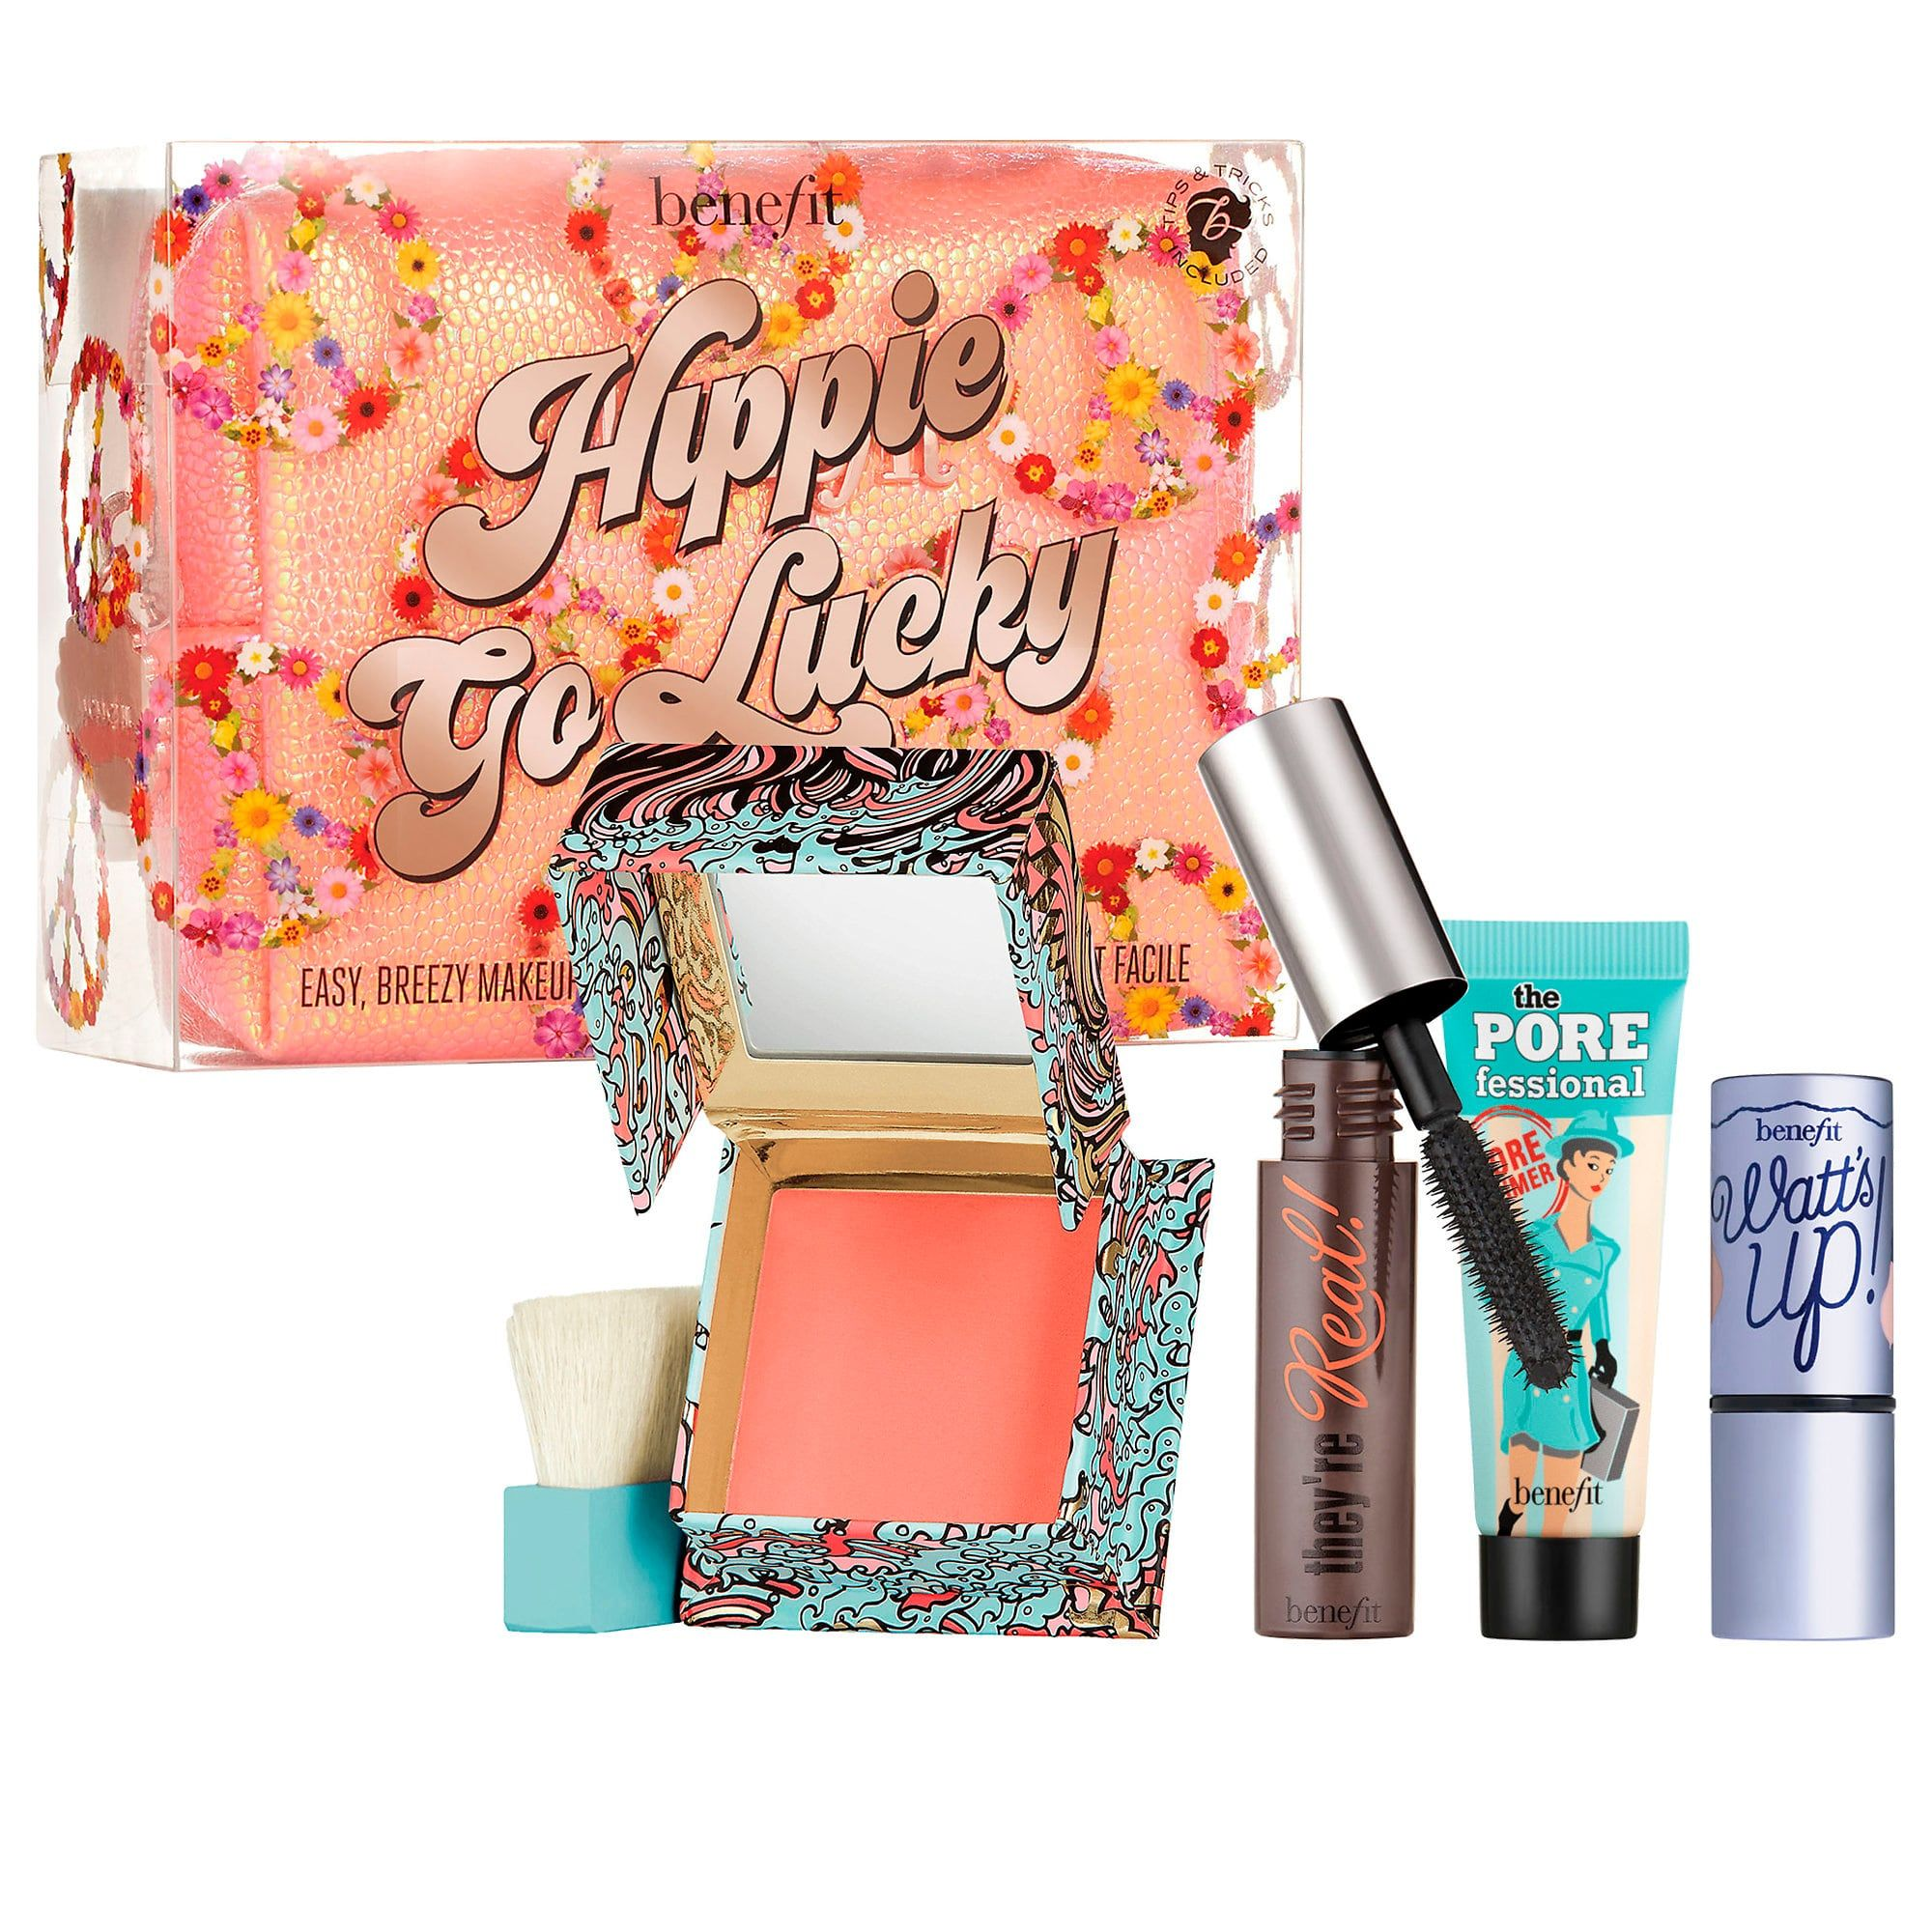 6ac416d70a2 Benefit Cosmetics Hippie Go Lucky Mascara & Face Mini Kit | Products ...